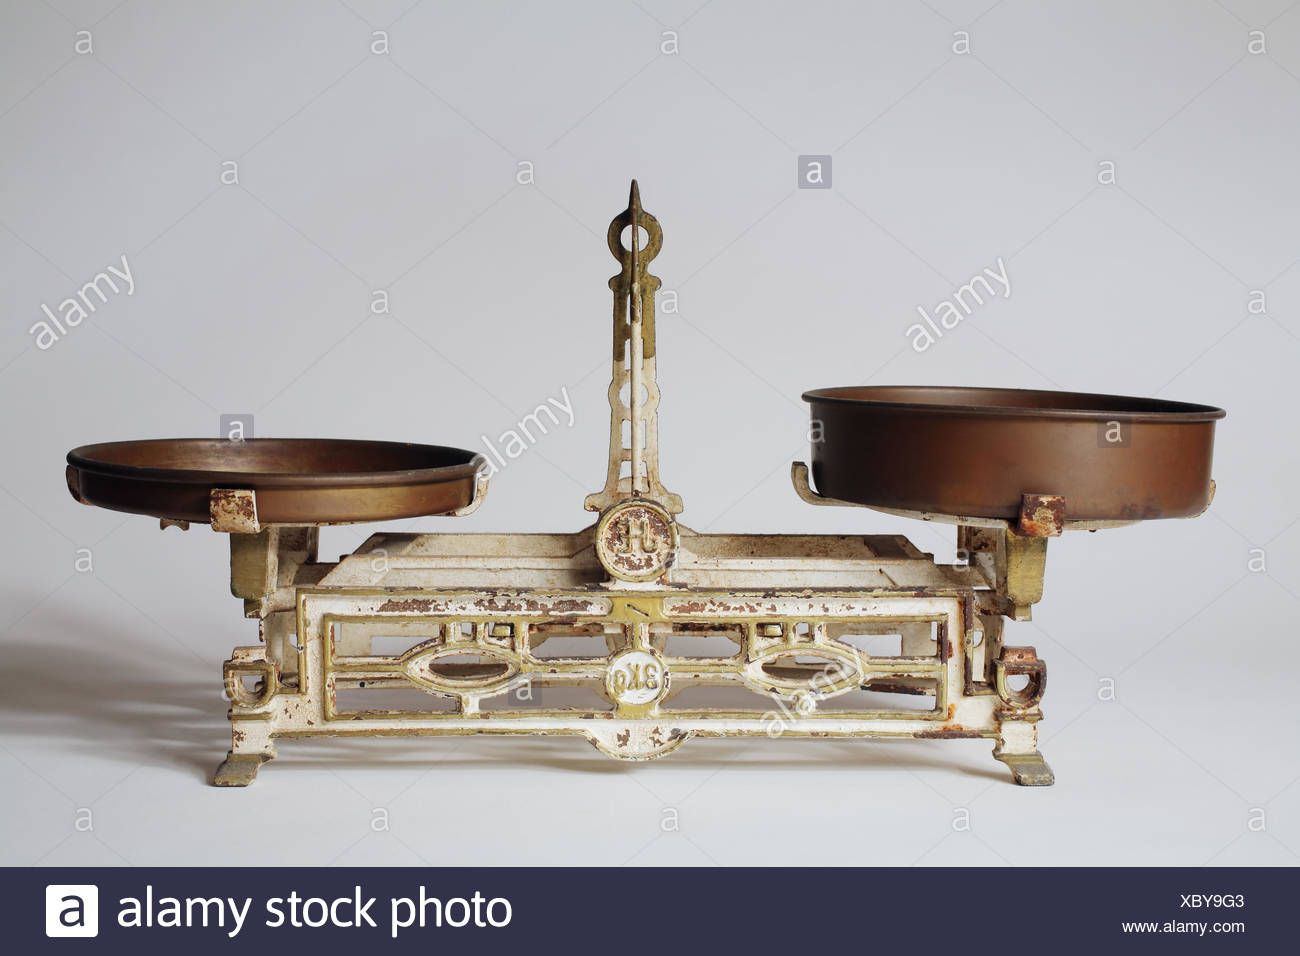 rusty equilibrium weigh scales kilogram old pointer iron rusty equilibrium Stock Photo